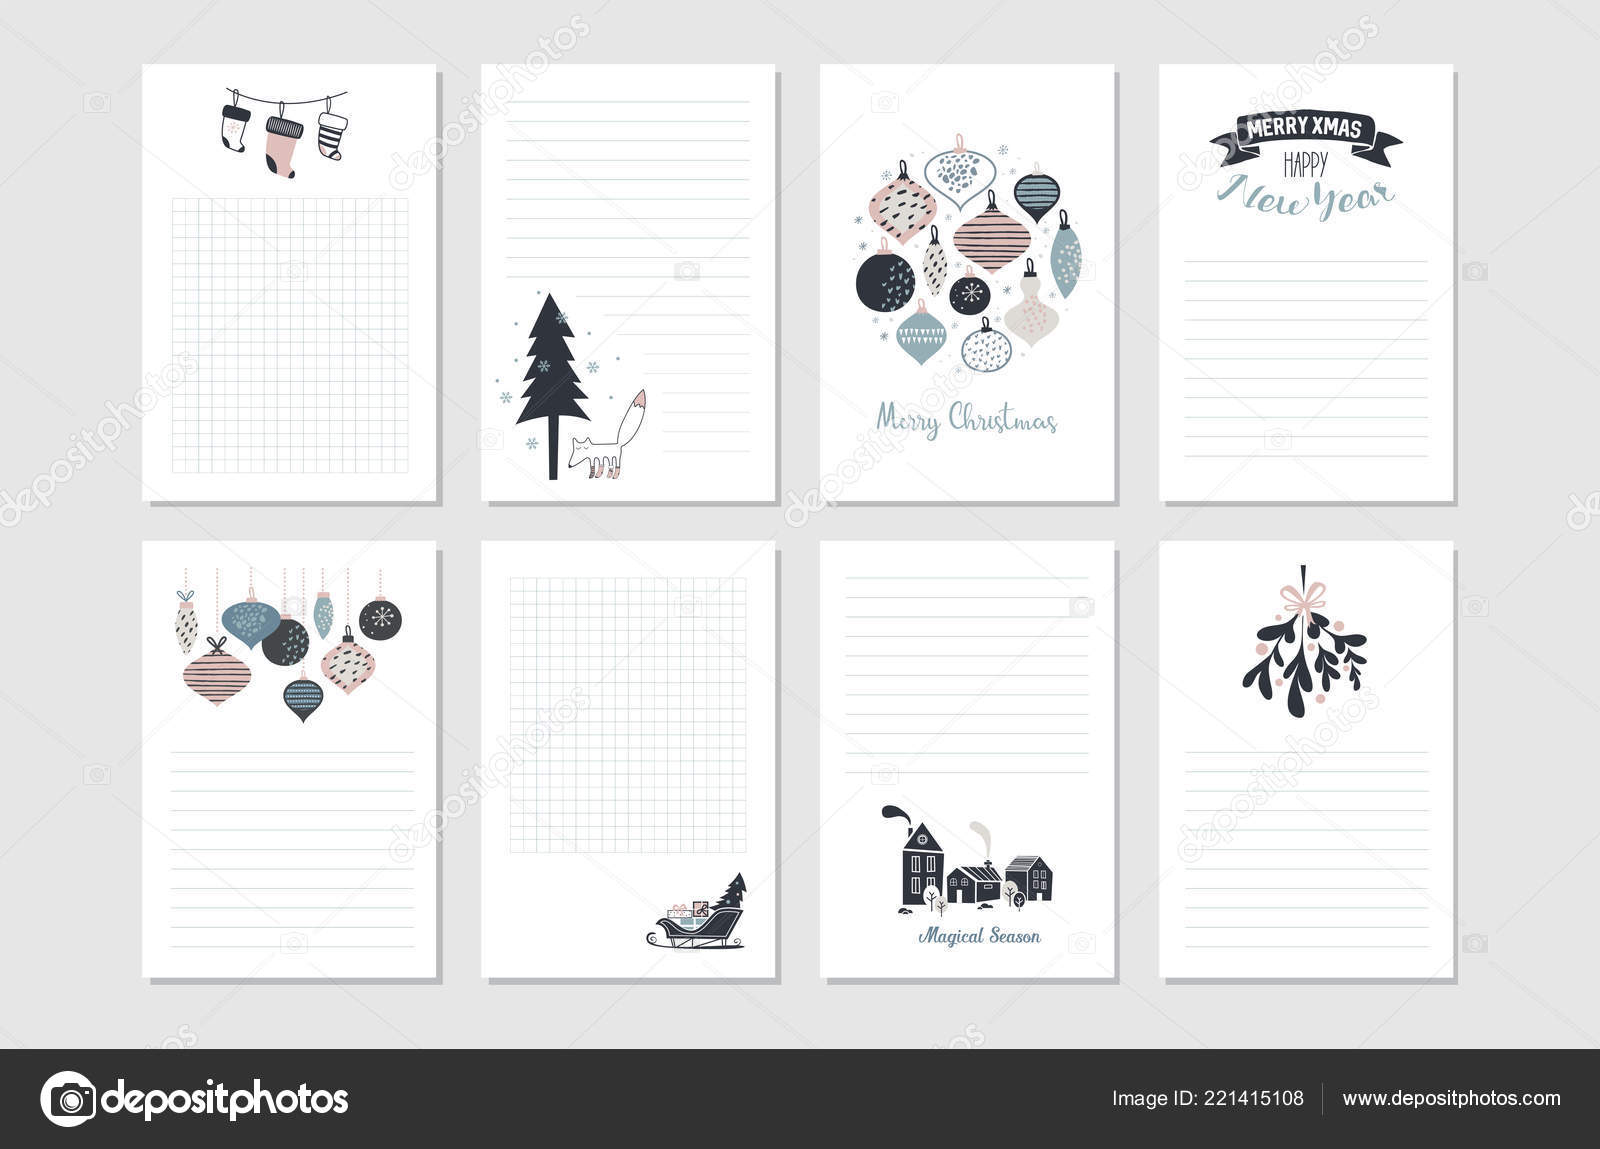 graphic about Printable Christmas Stationary named Hipster Clean Yr and Merry Xmas stationary fastened. Vector